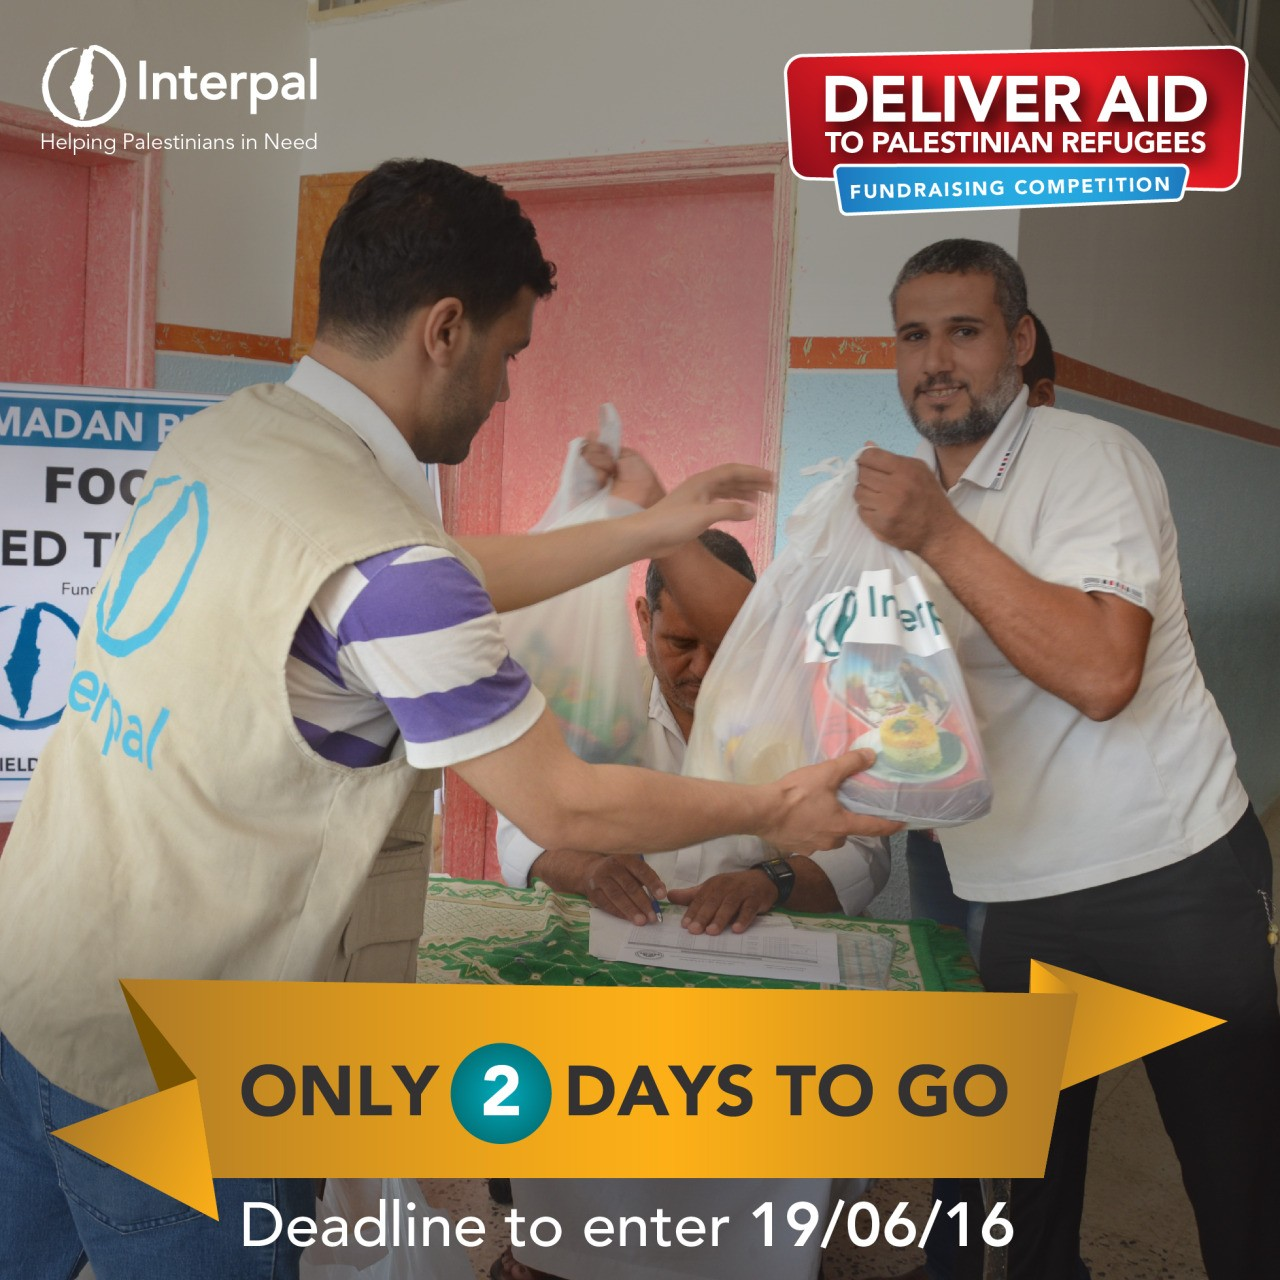 Only 2 days left – Deliver Aid to Palestinian Refugees